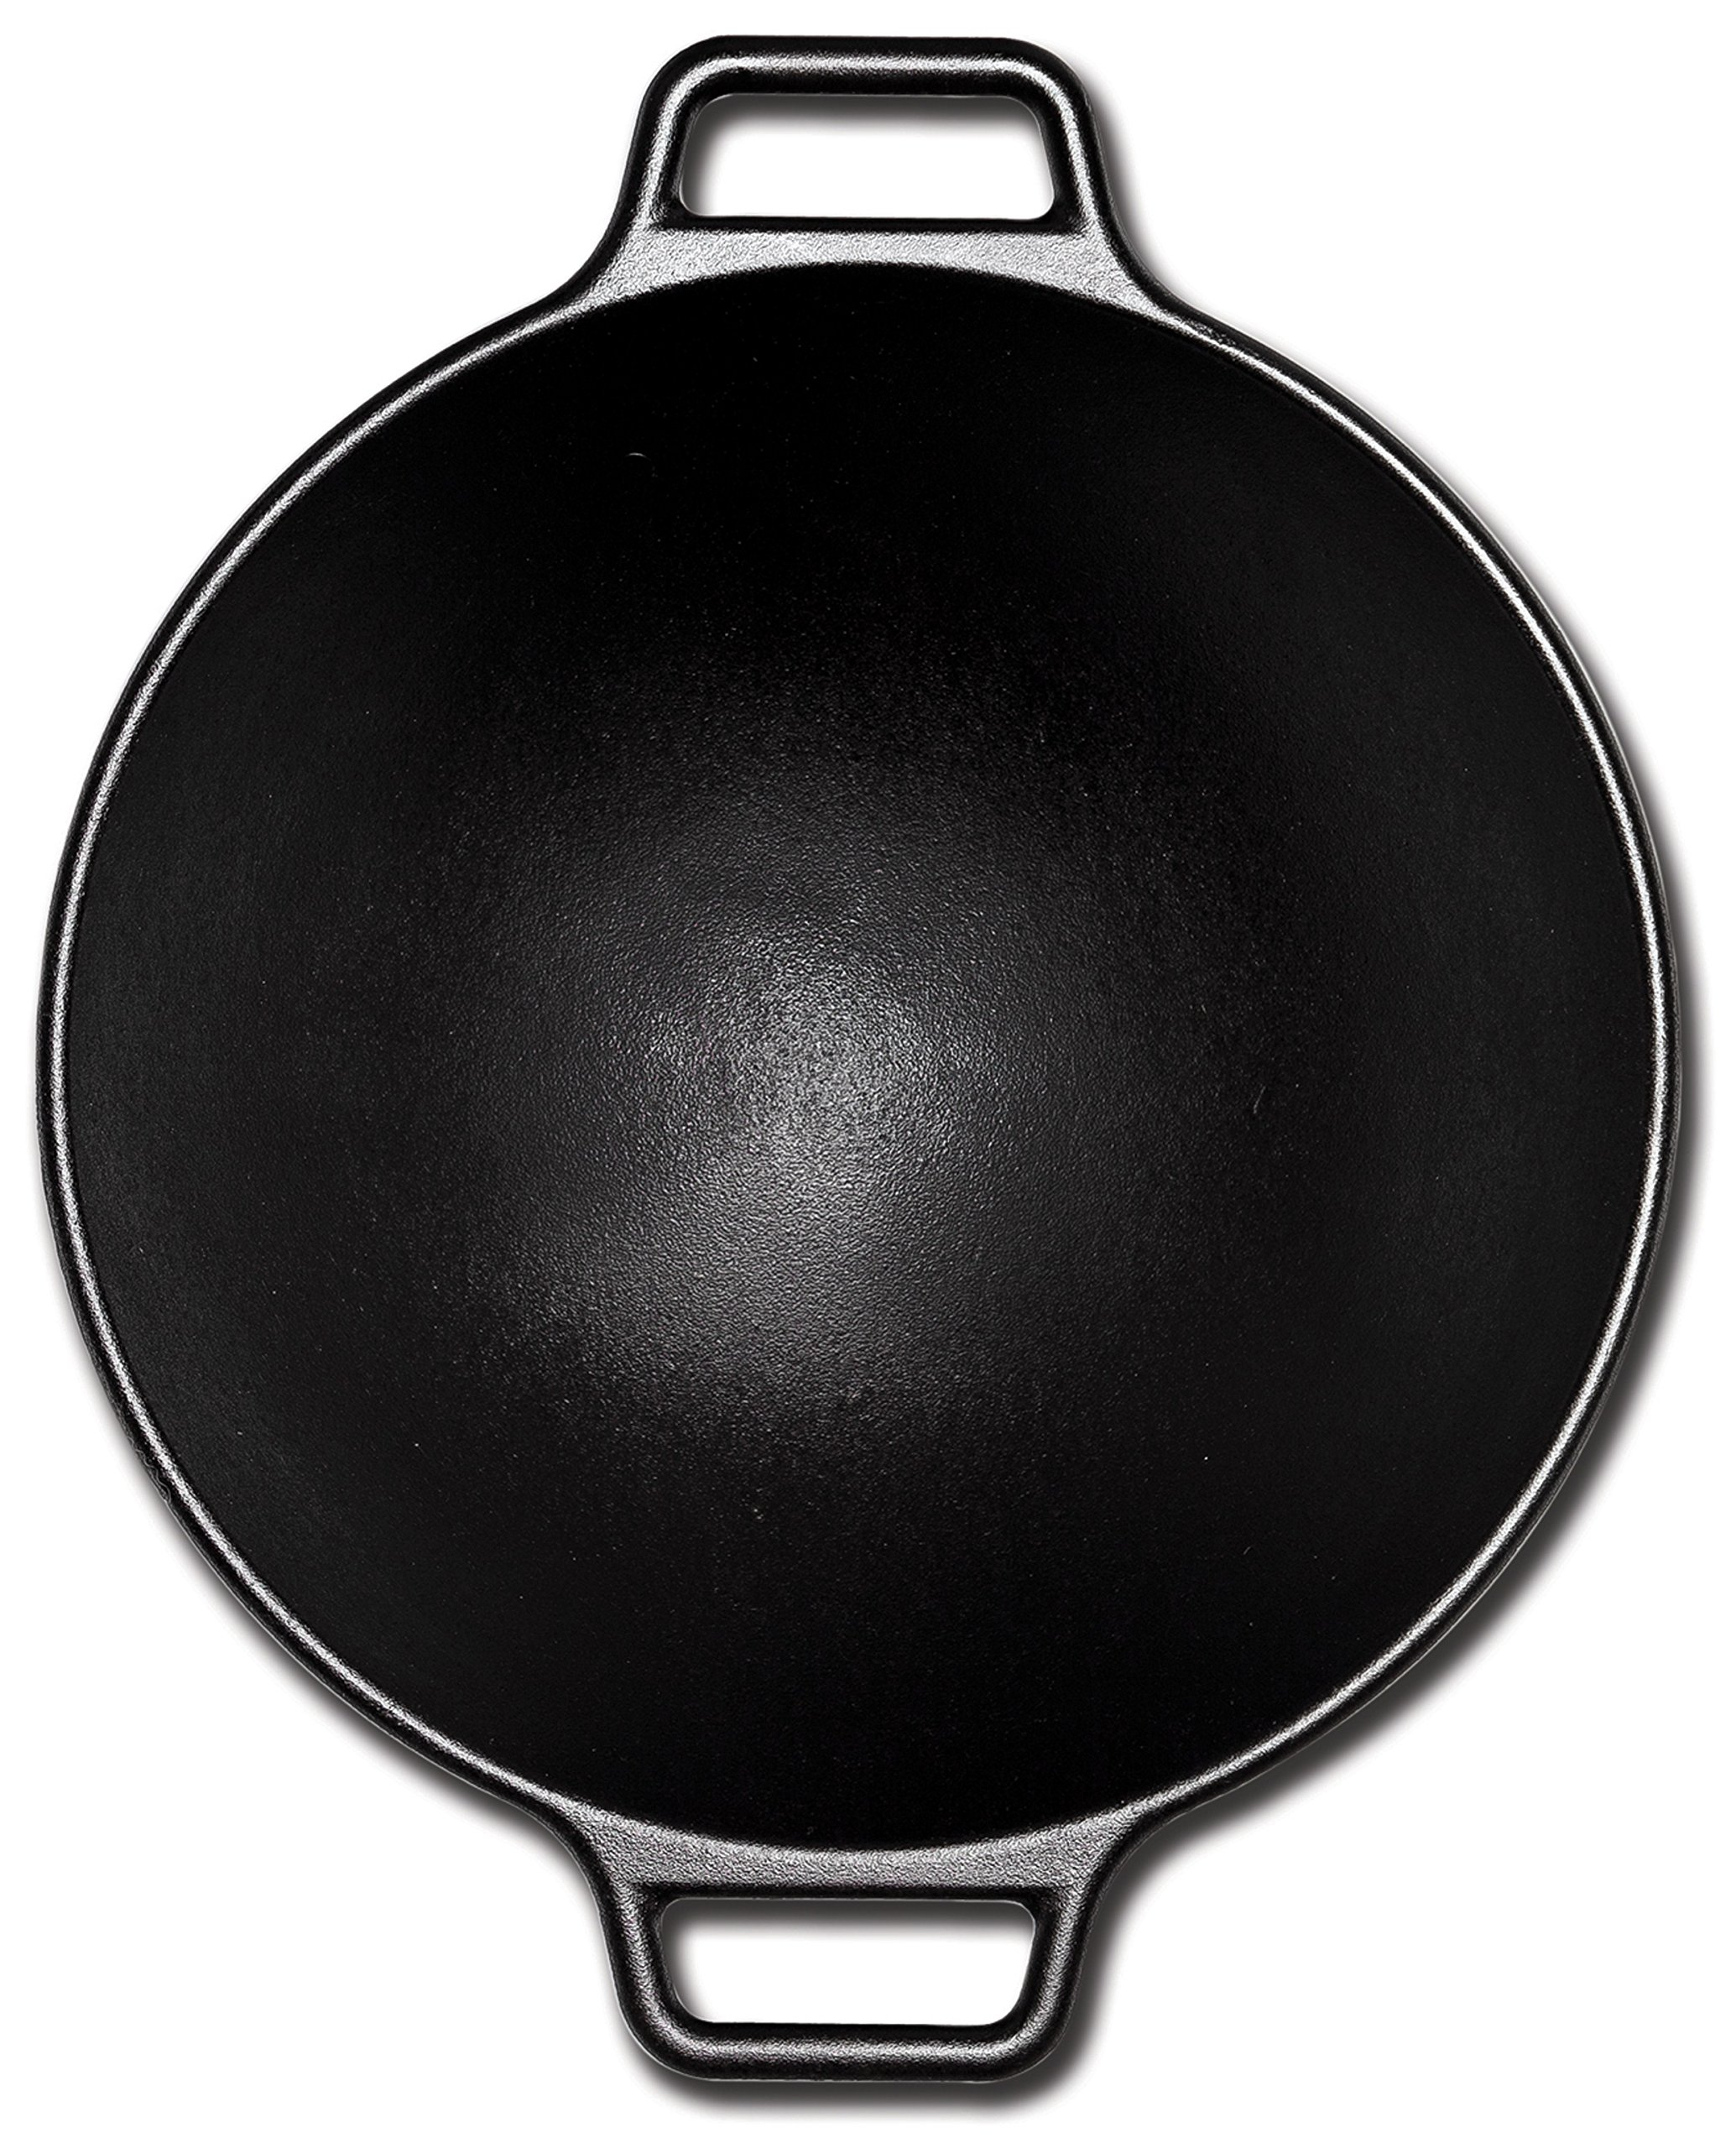 Cast iron delivers great performance at a low cost